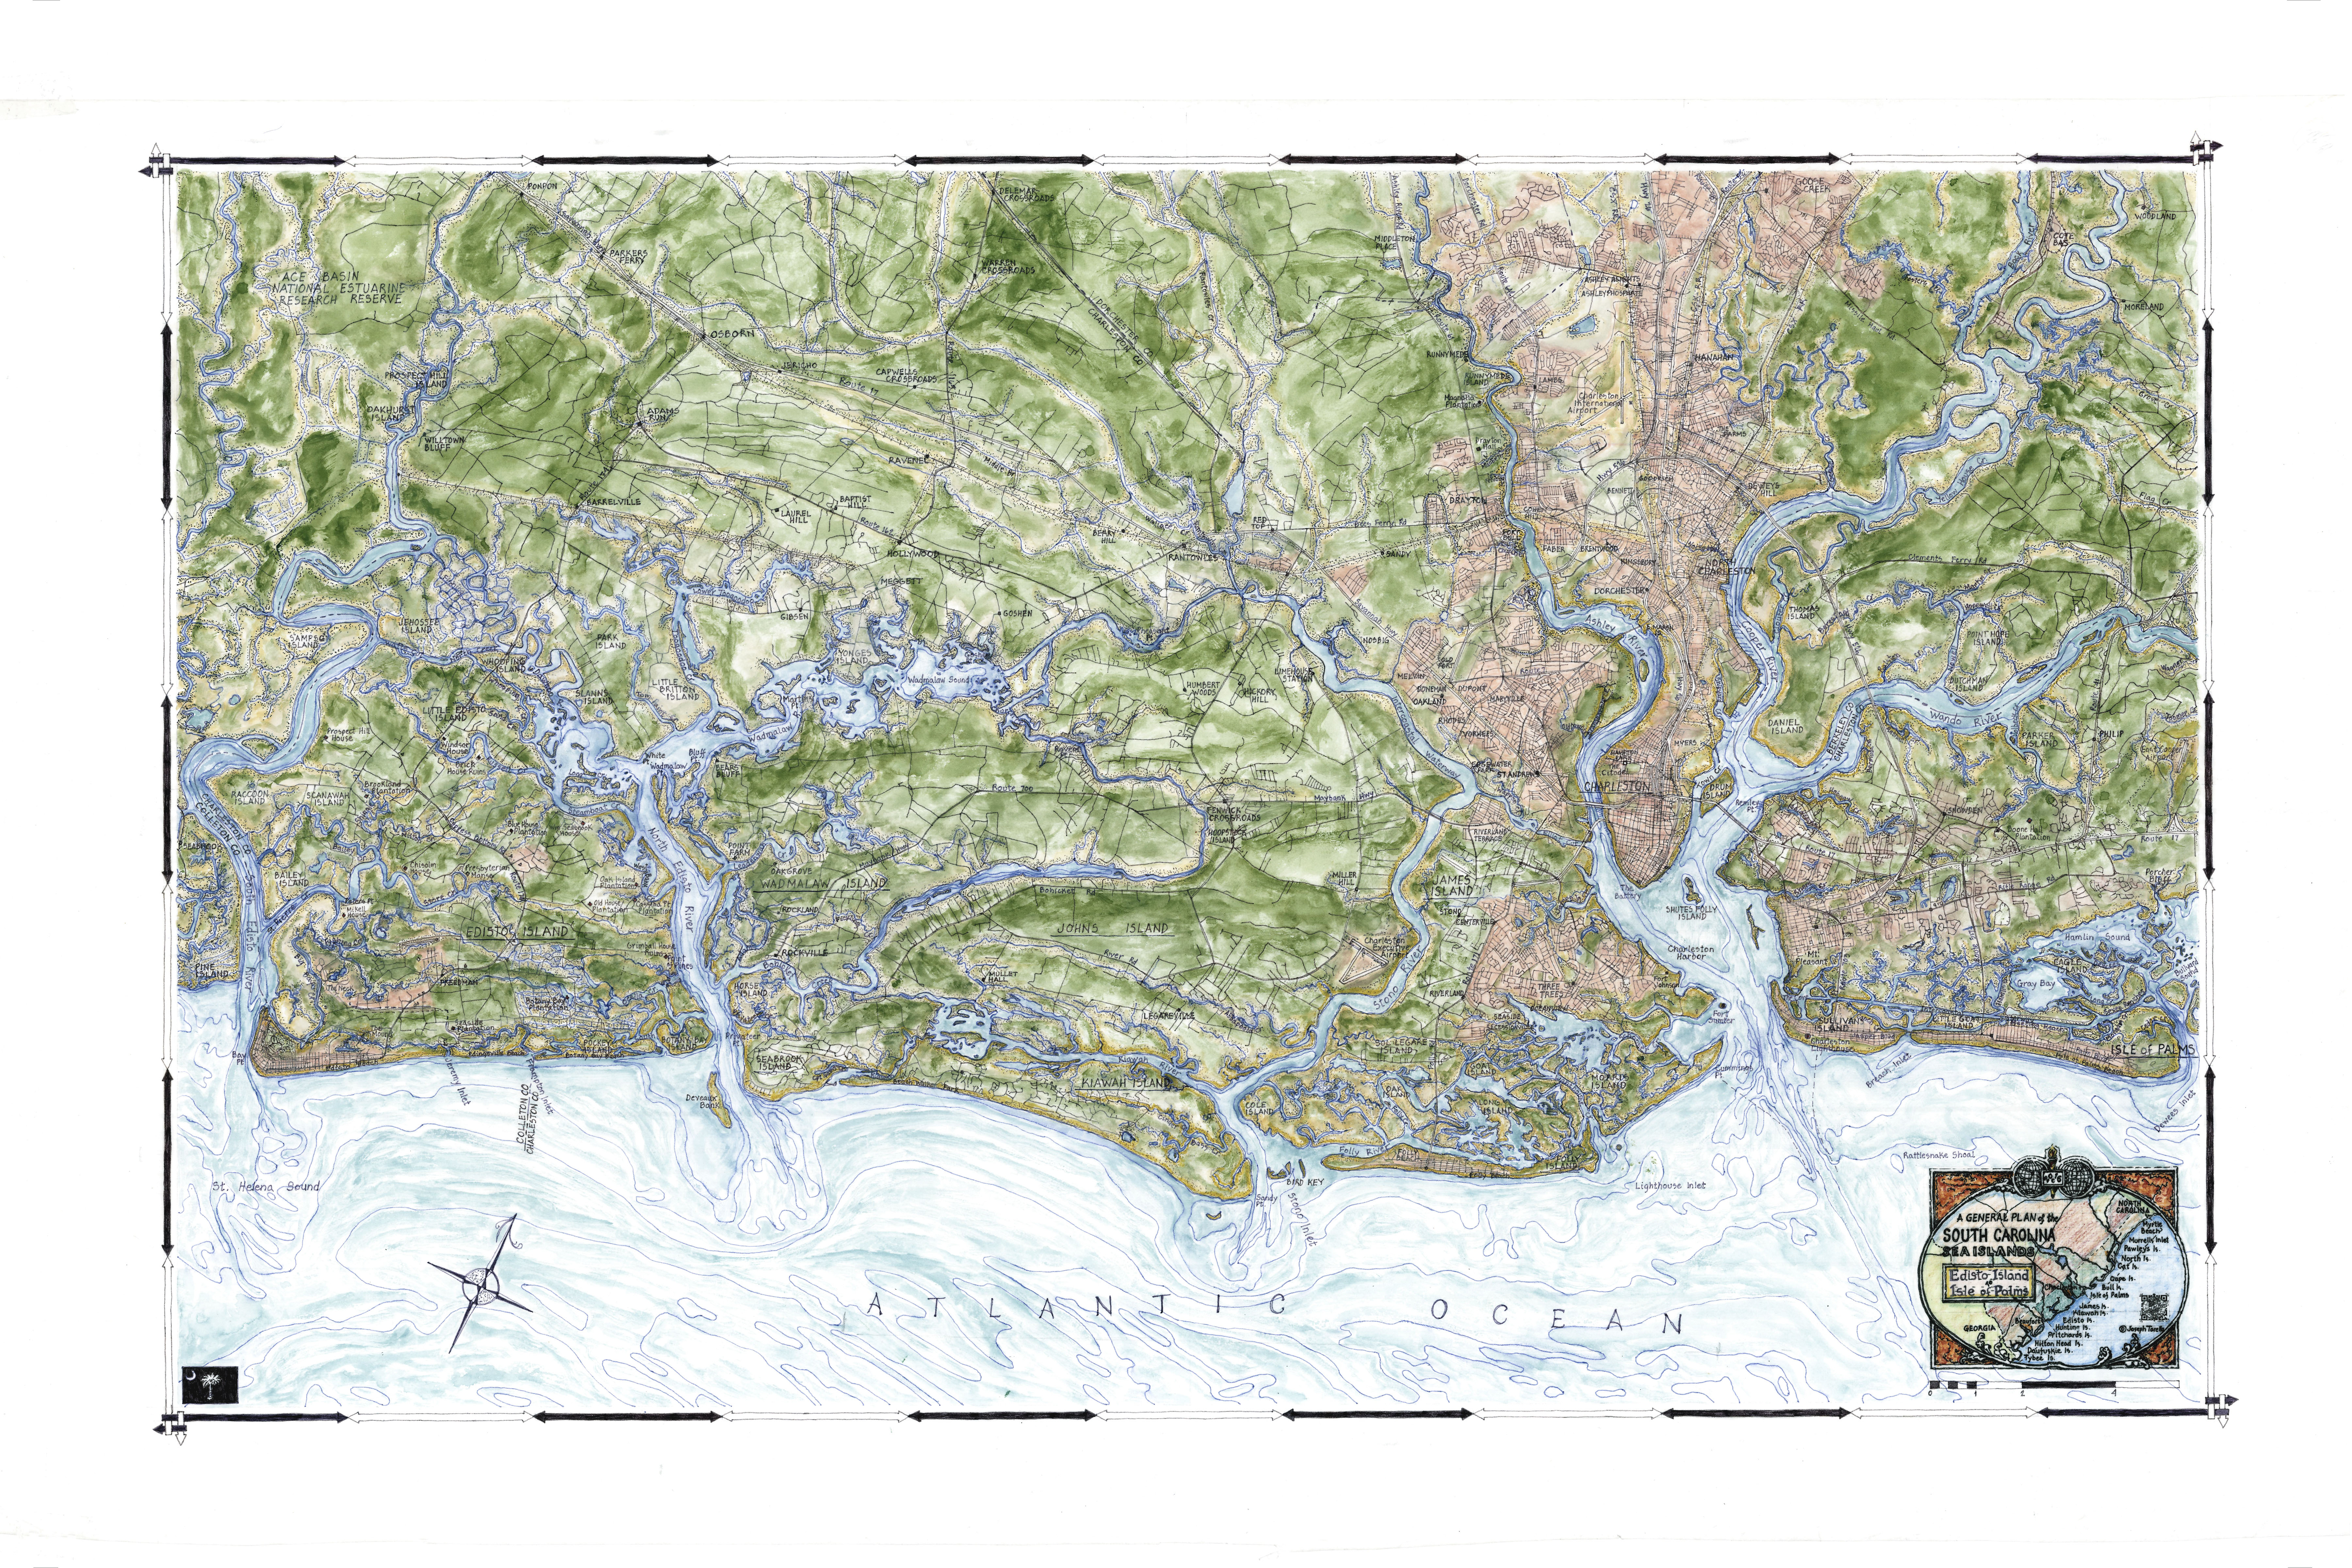 Hand-drawn Maps Showcase Beauty Of Carolina Coast - The ... on map of kershaw, map of taylors, map of kingstree, map of mcclellanville, map of latta, map of aynor, map of ridgeville, map of lodge, map of robert trent jones trail, map of west columbia, map of blackville, map of charleston, map of summerton, map of the greenbrier, map of holly hill, map of hemingway, map of bandon dunes, map of travelers rest, map of easley, map of pamplico,